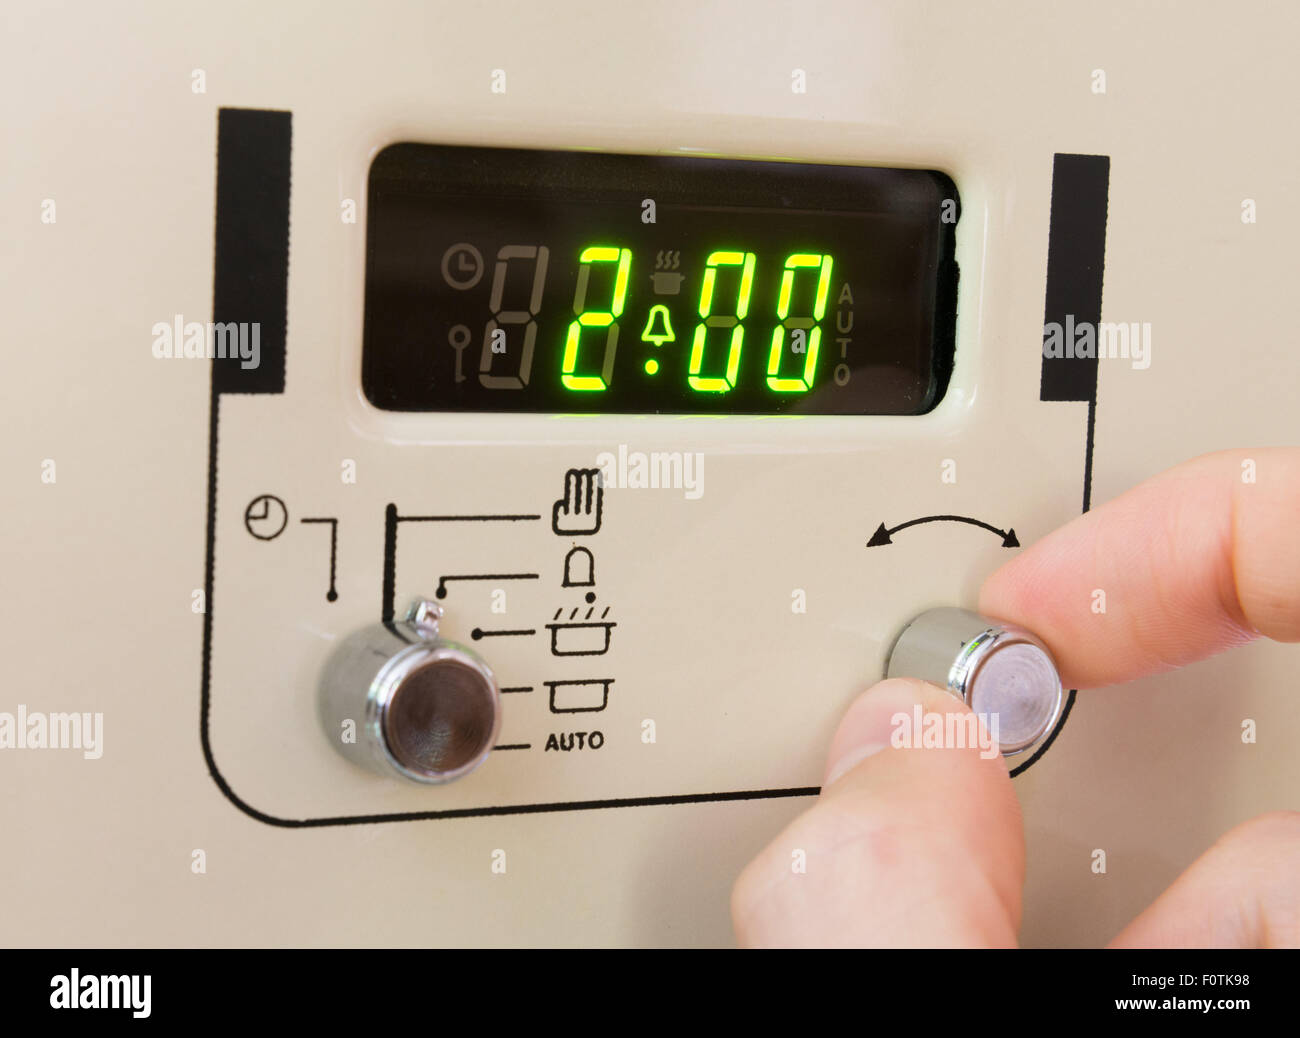 Setting a cooker timer to 2 hours - Stock Image